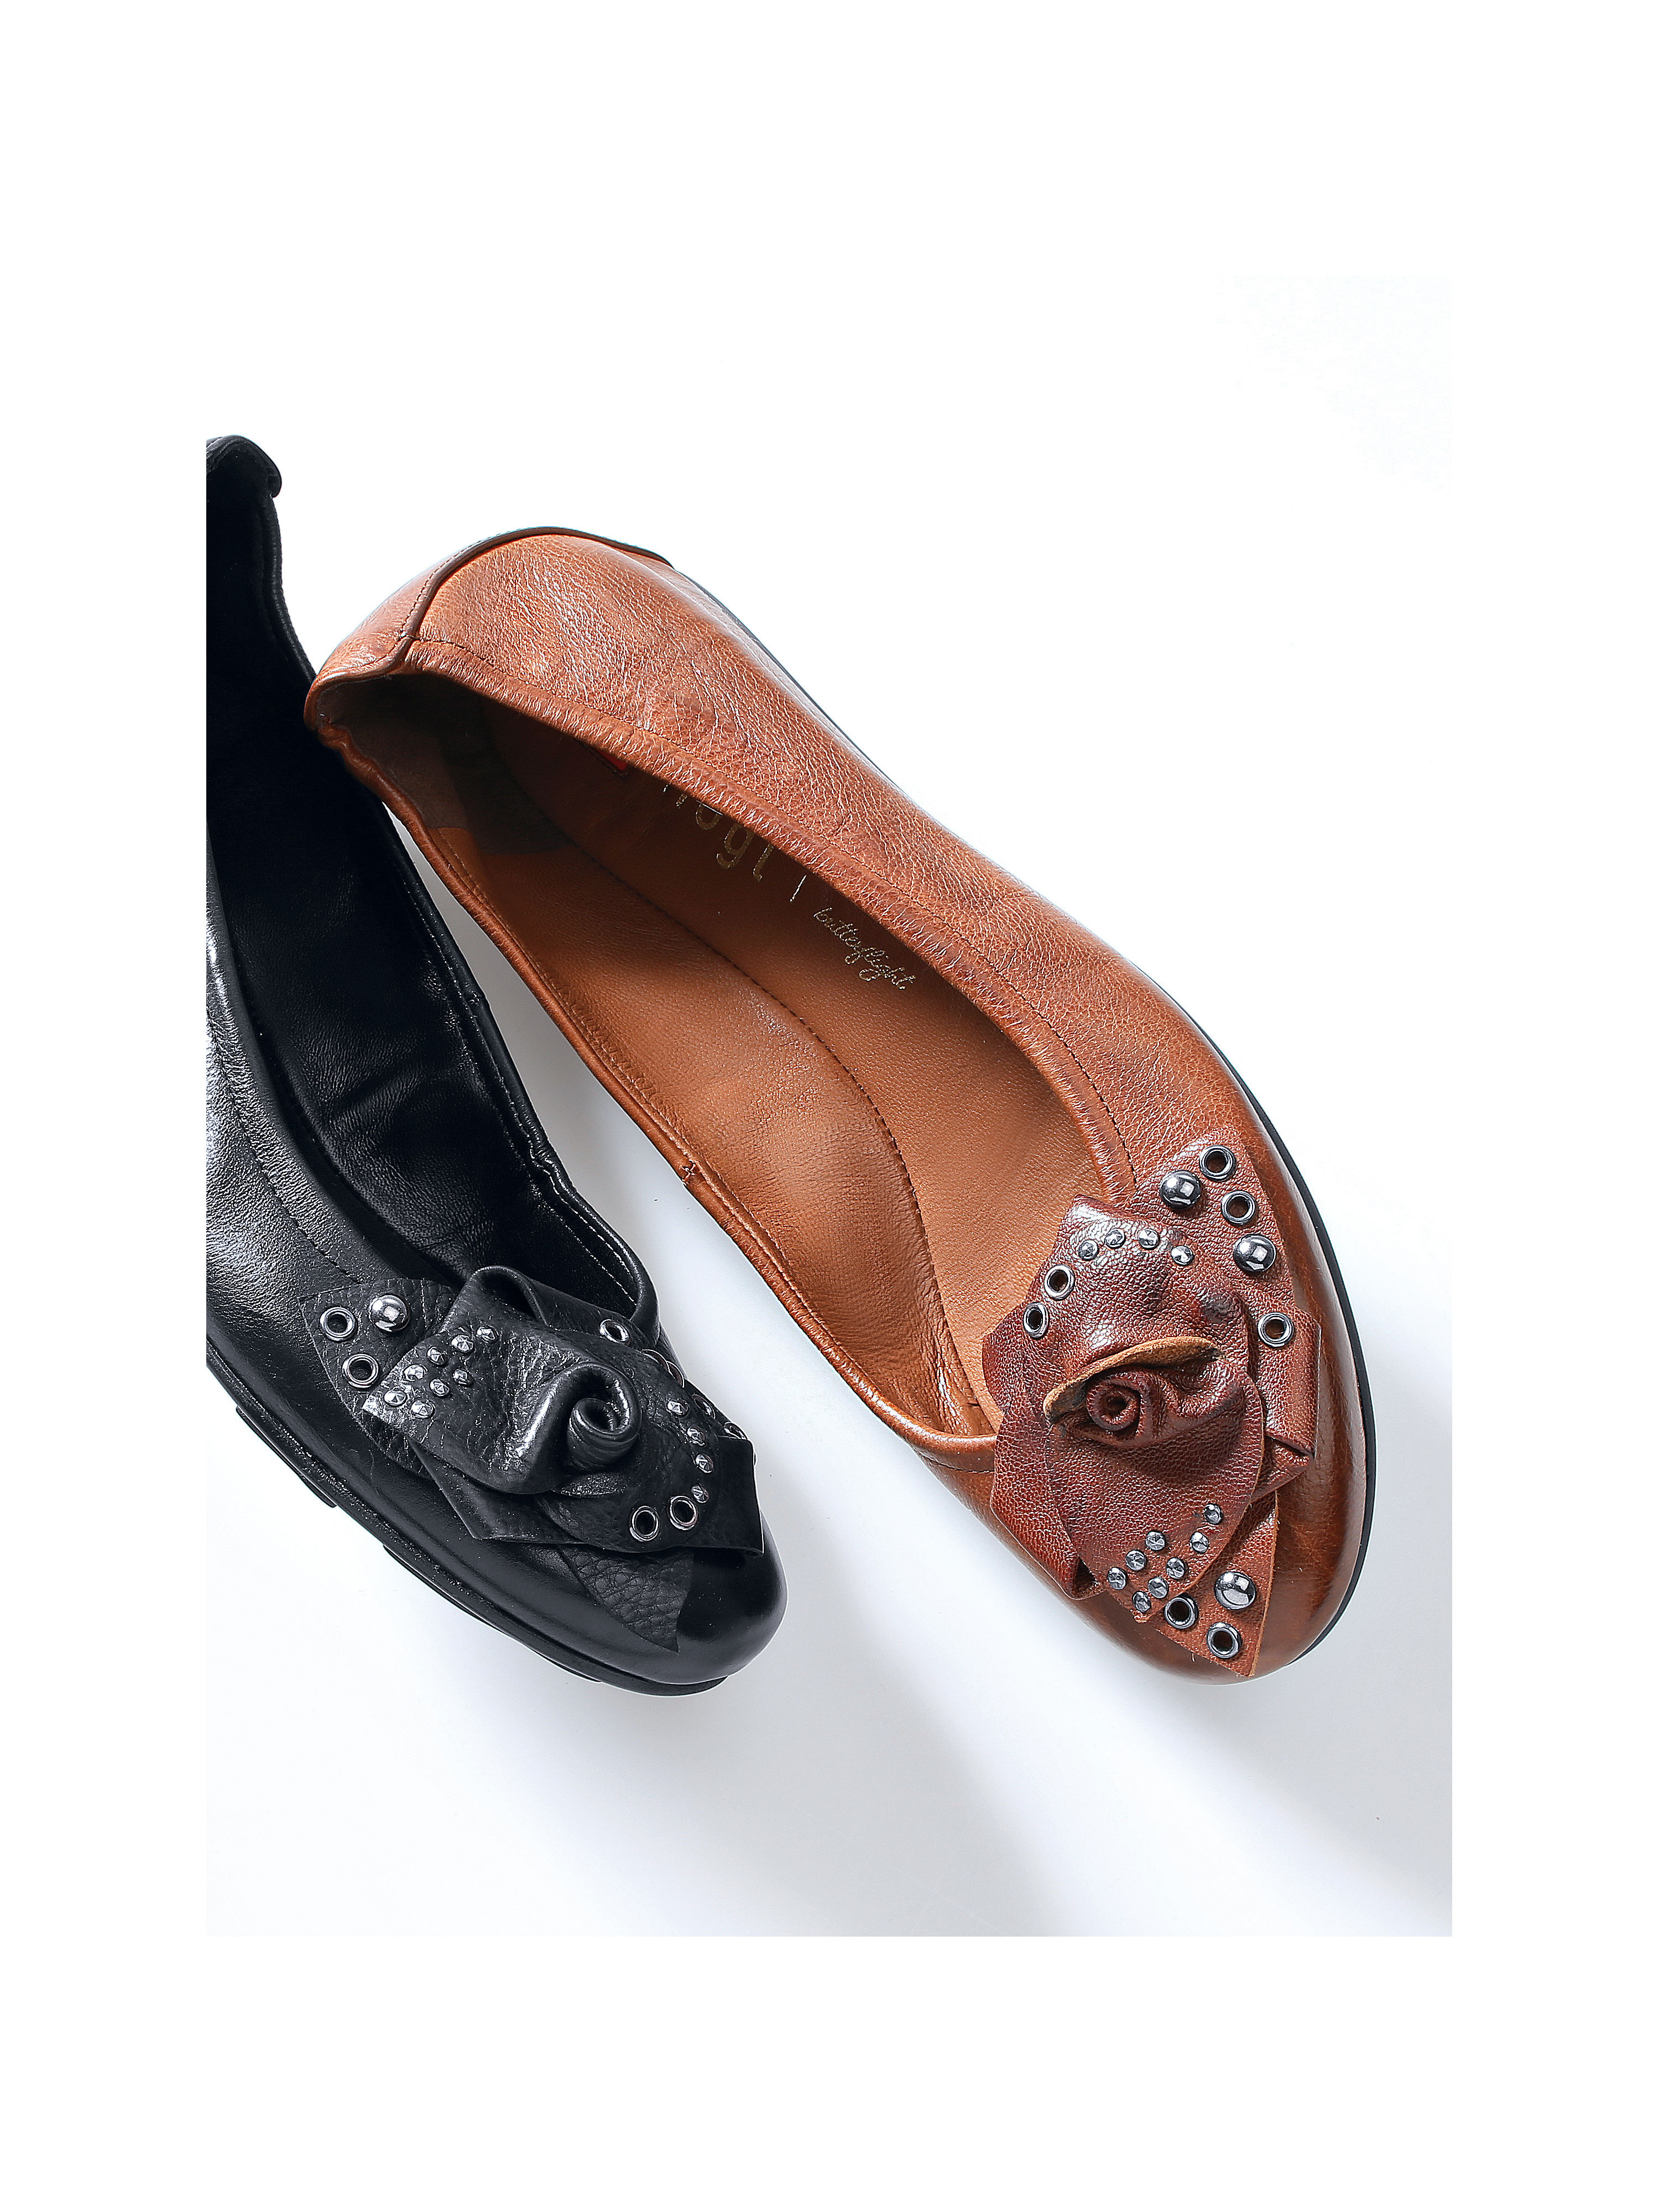 Ballerinas from the Butterflight collection Högl brown